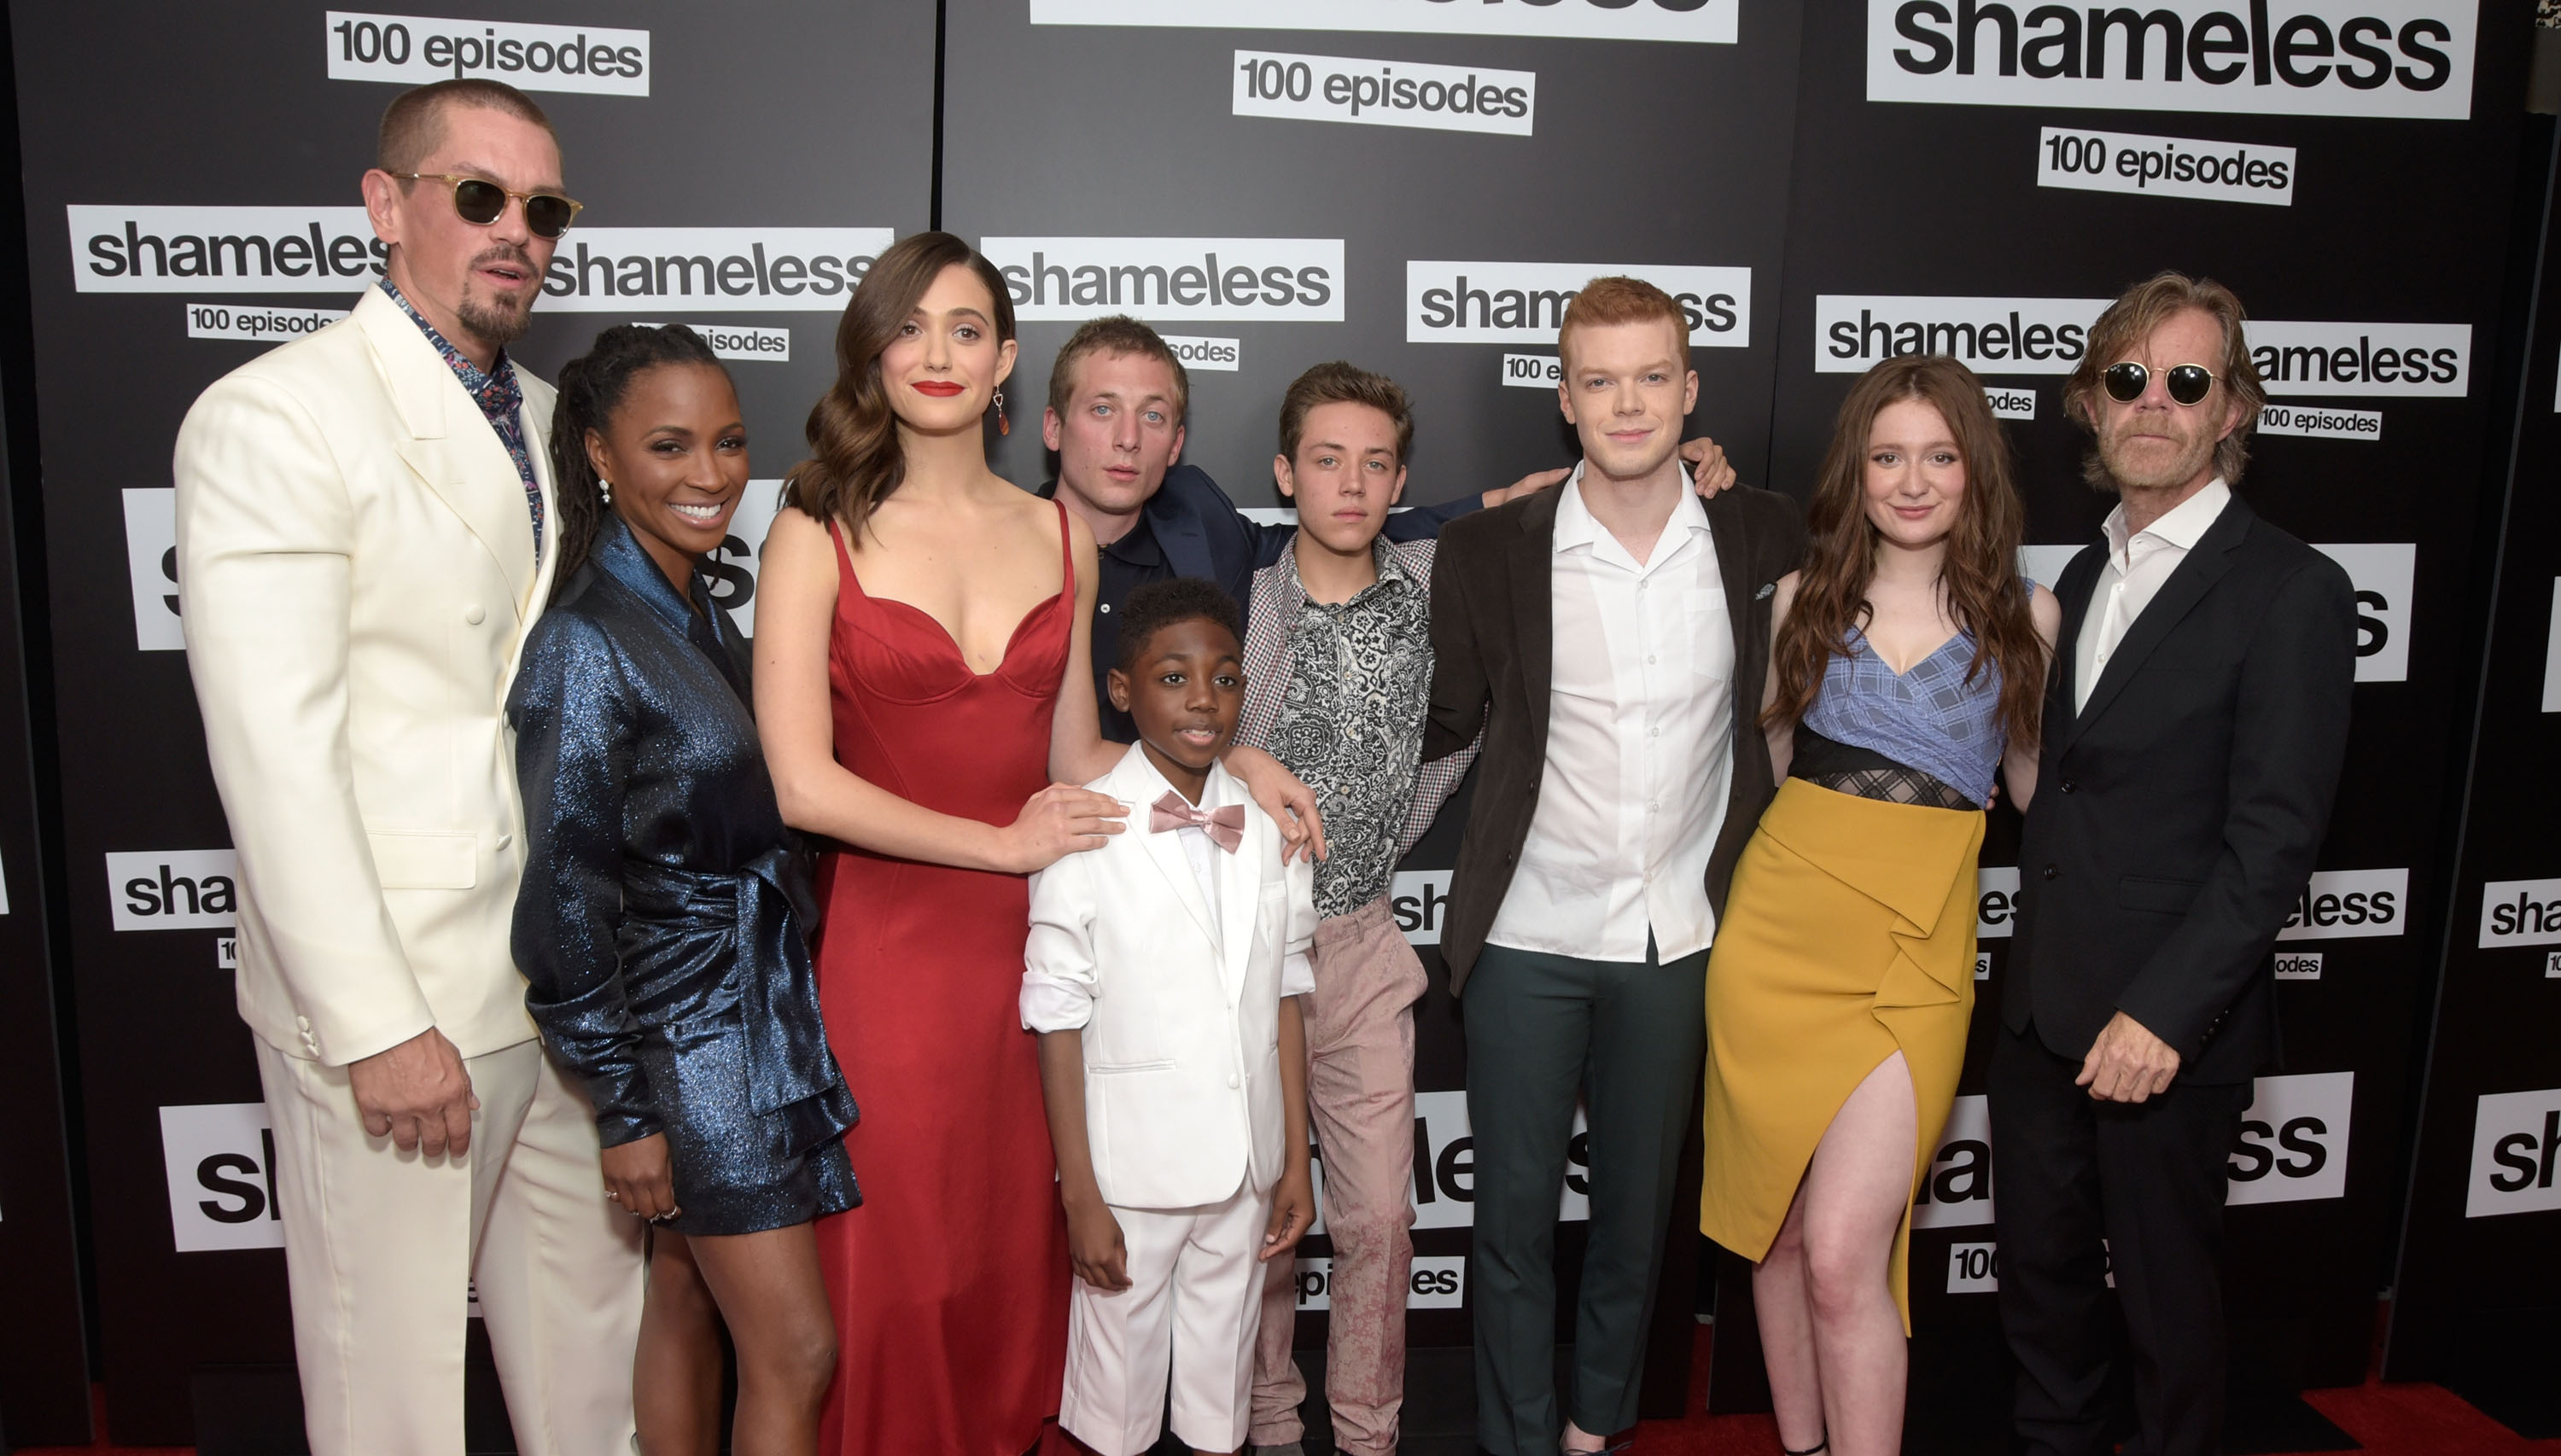 (L - R) Steve Howey, Shanola Hampton, Emmy Rossum, Jeremy Allen White, Christian Isaiah, Ethan Cutkowsky, Cameron Monaghan, Emma Kenney and William H. Macy attend the celebration of the 100th episode of Showtime's 'Shameless' at DREAM Hollywood on June 9, 2018 in Hollywood, California.